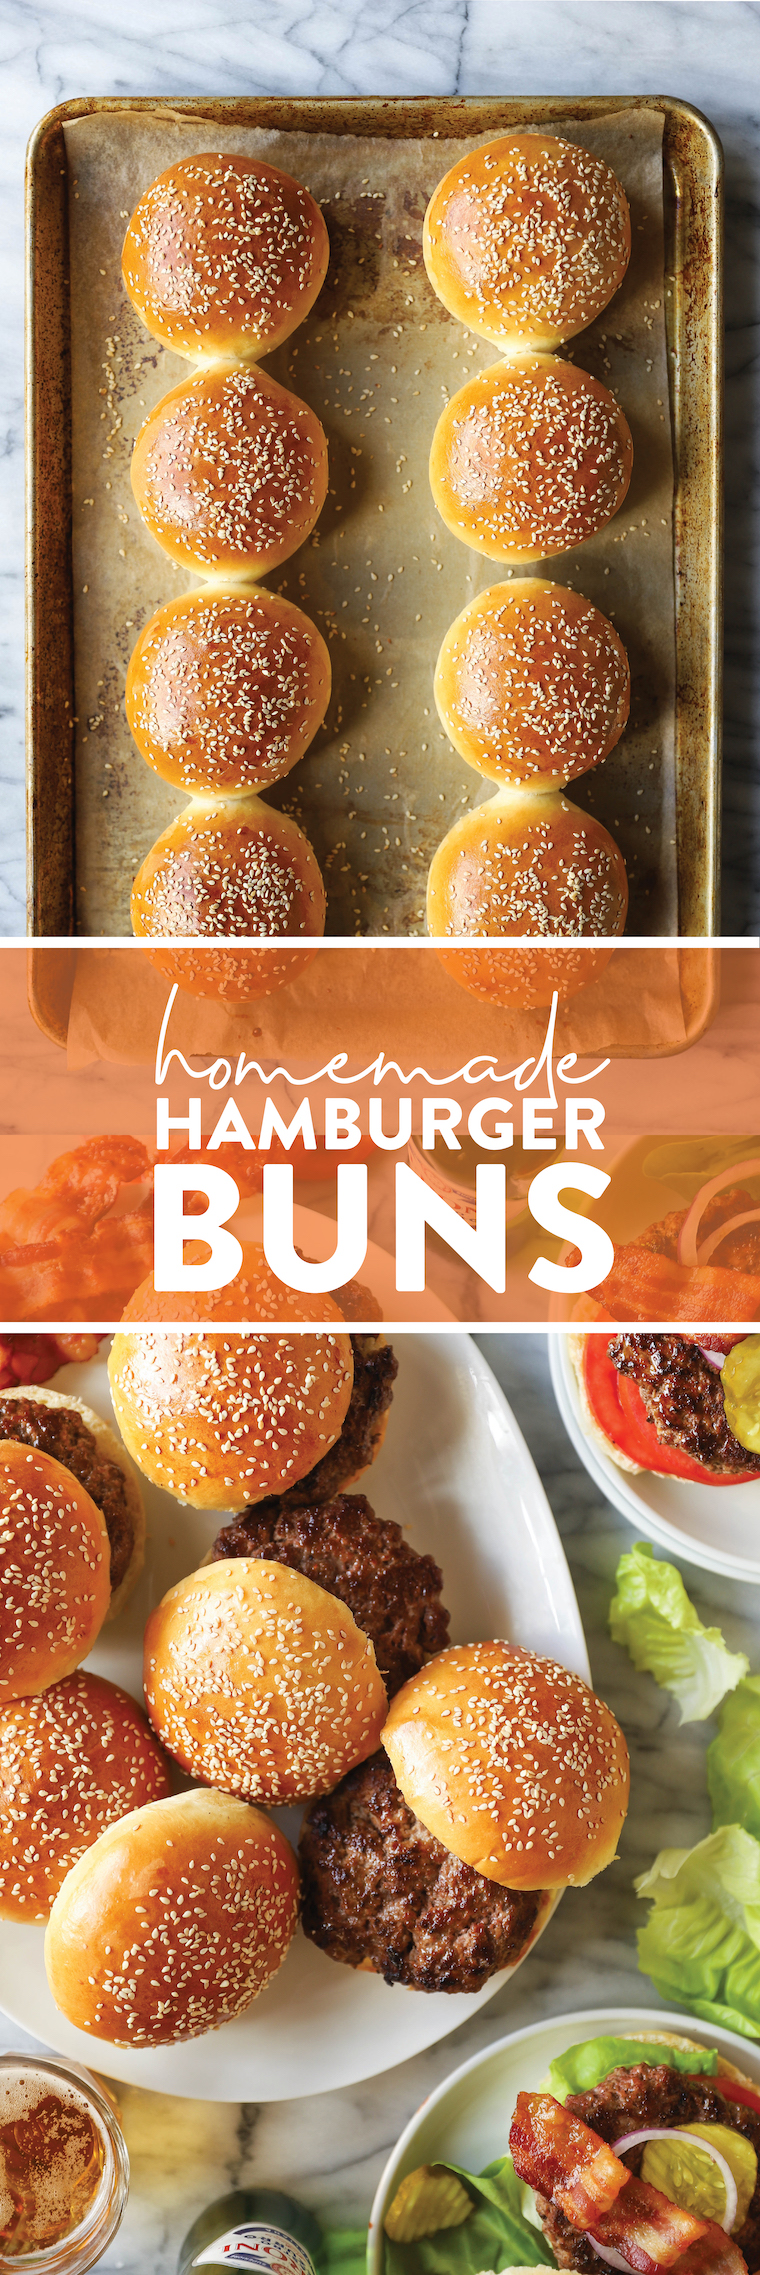 Homemade Hamburger Buns - THE BEST Buns Ever!  So soft, chewy and airy, perfect for any sandwich.  You will never want to buy in store ever again!